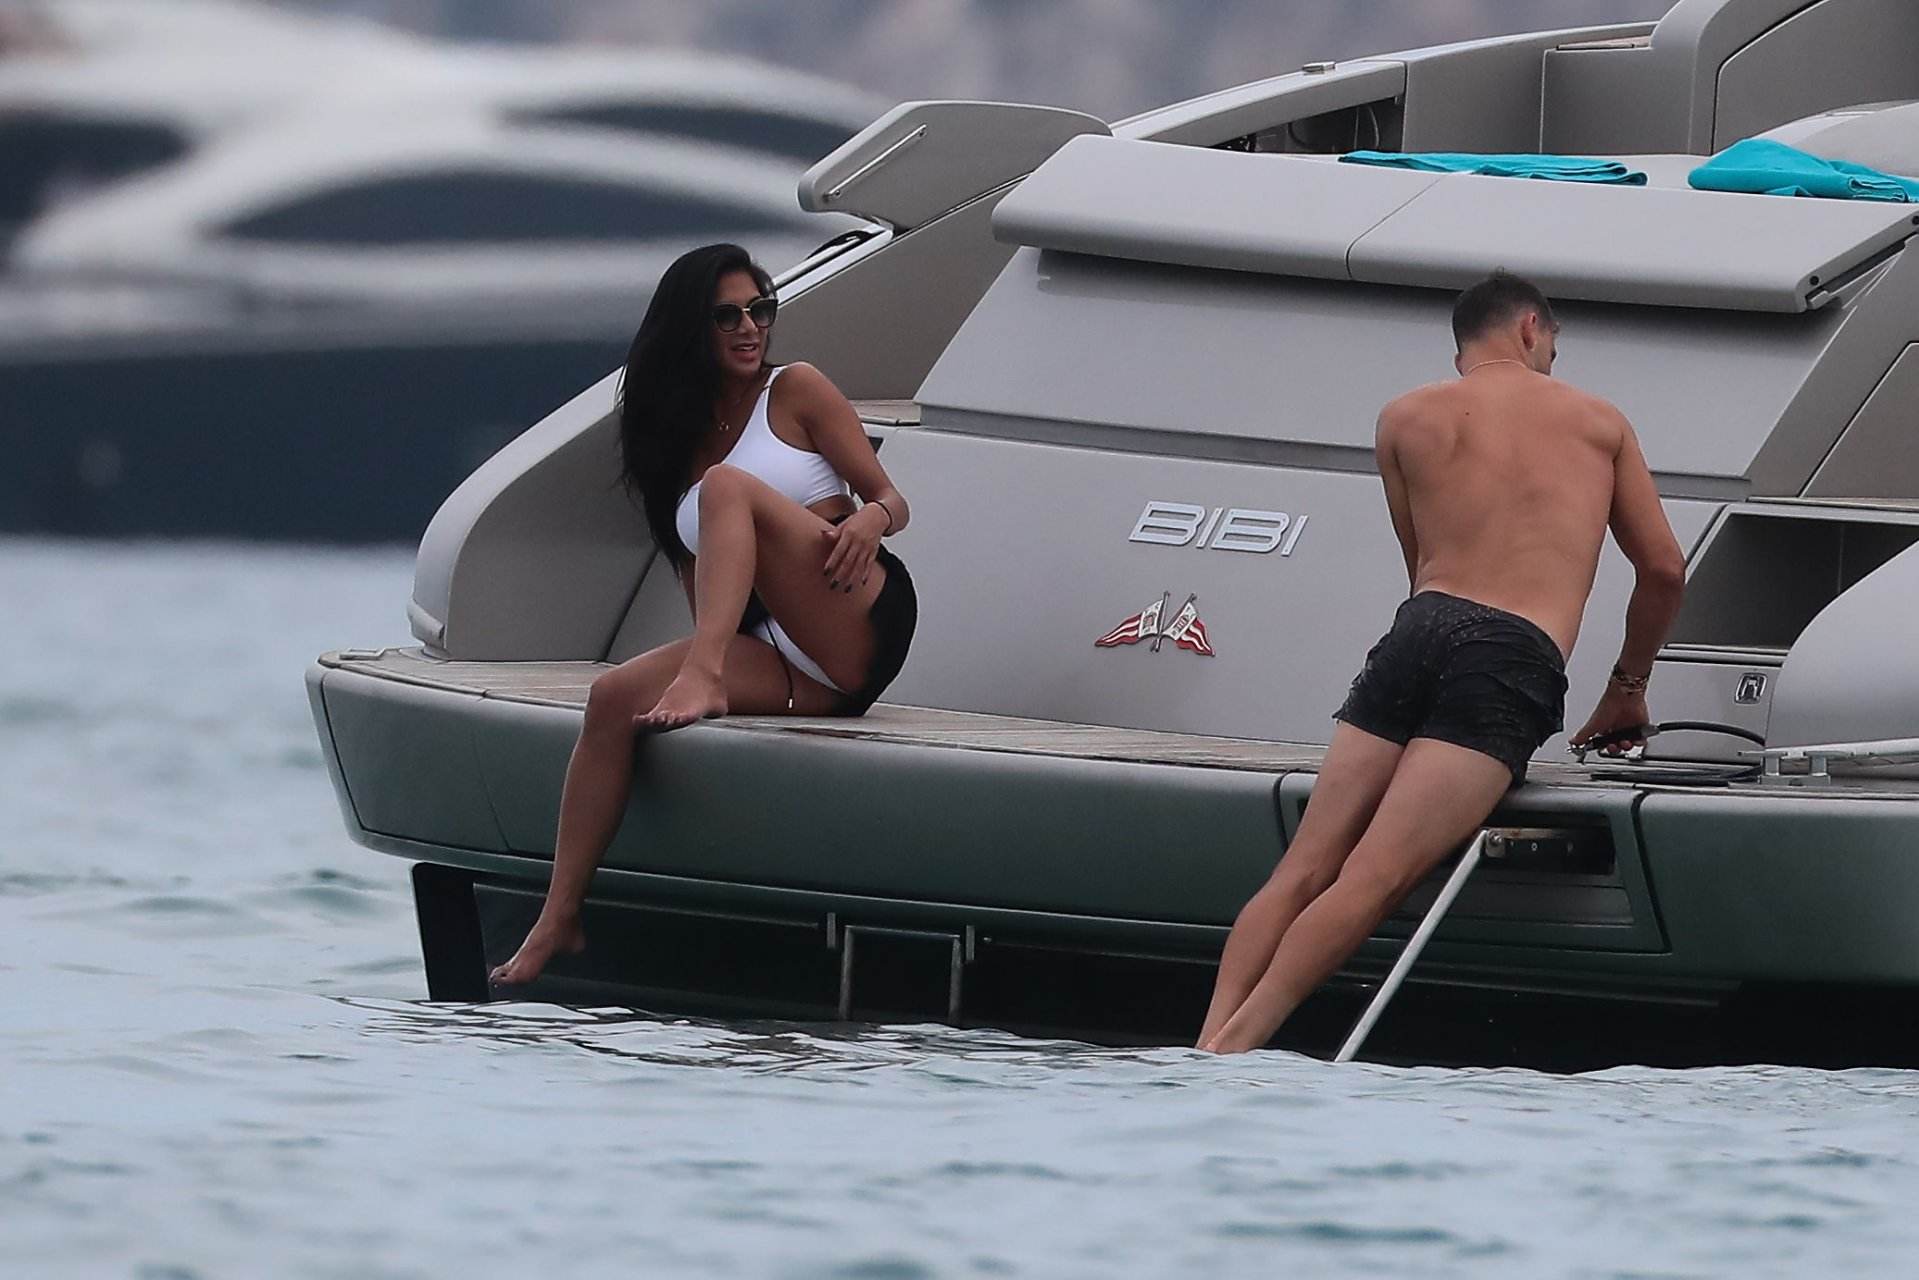 Nicole Scherzinger flashing her panty in St Tropez, South of France with her boyfriend, 07/22/2018.